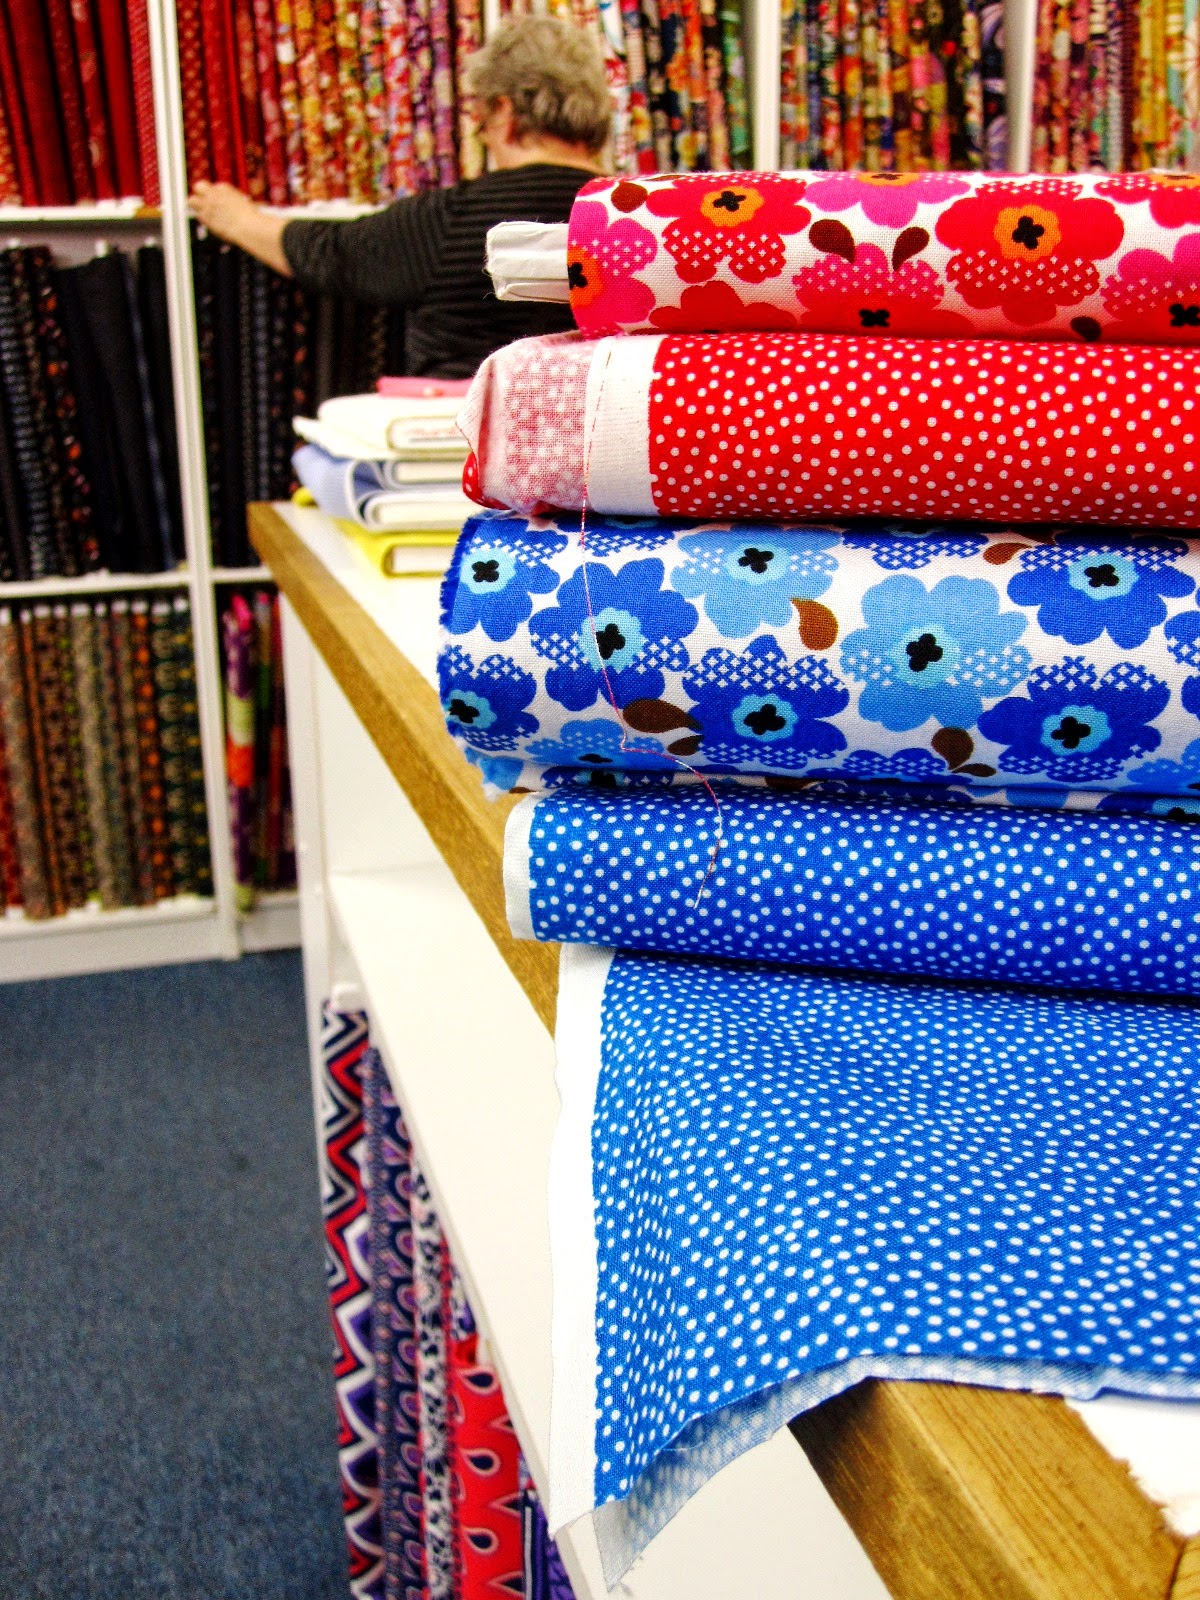 Inside a quilting fabric shop, showing a pile of fabric with Marimekko-like mini prints in the foreground and someone choosing fabric from the shelf in the background.